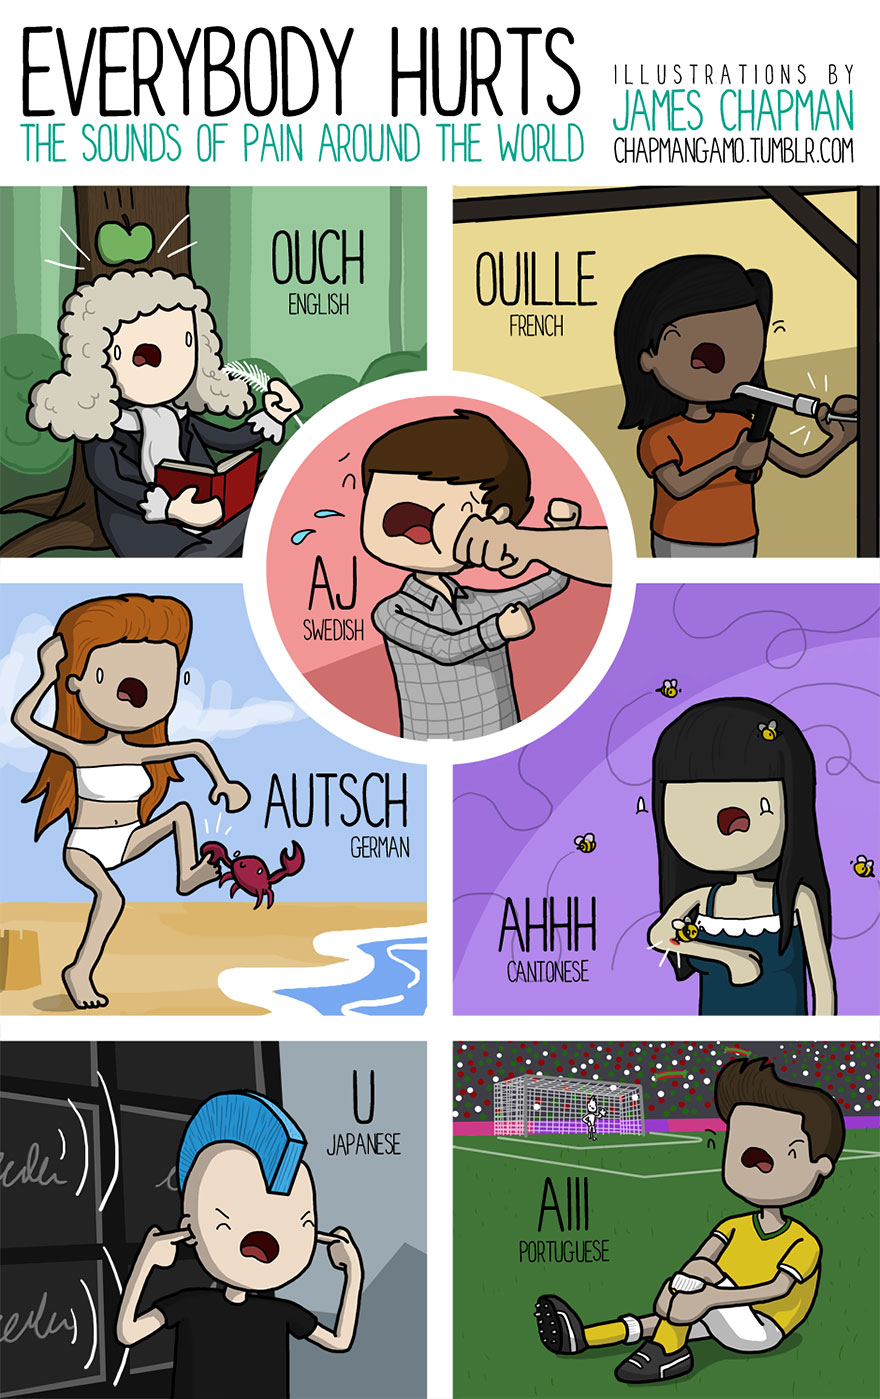 different-languages-expressions-illustrations-james-chapman-21